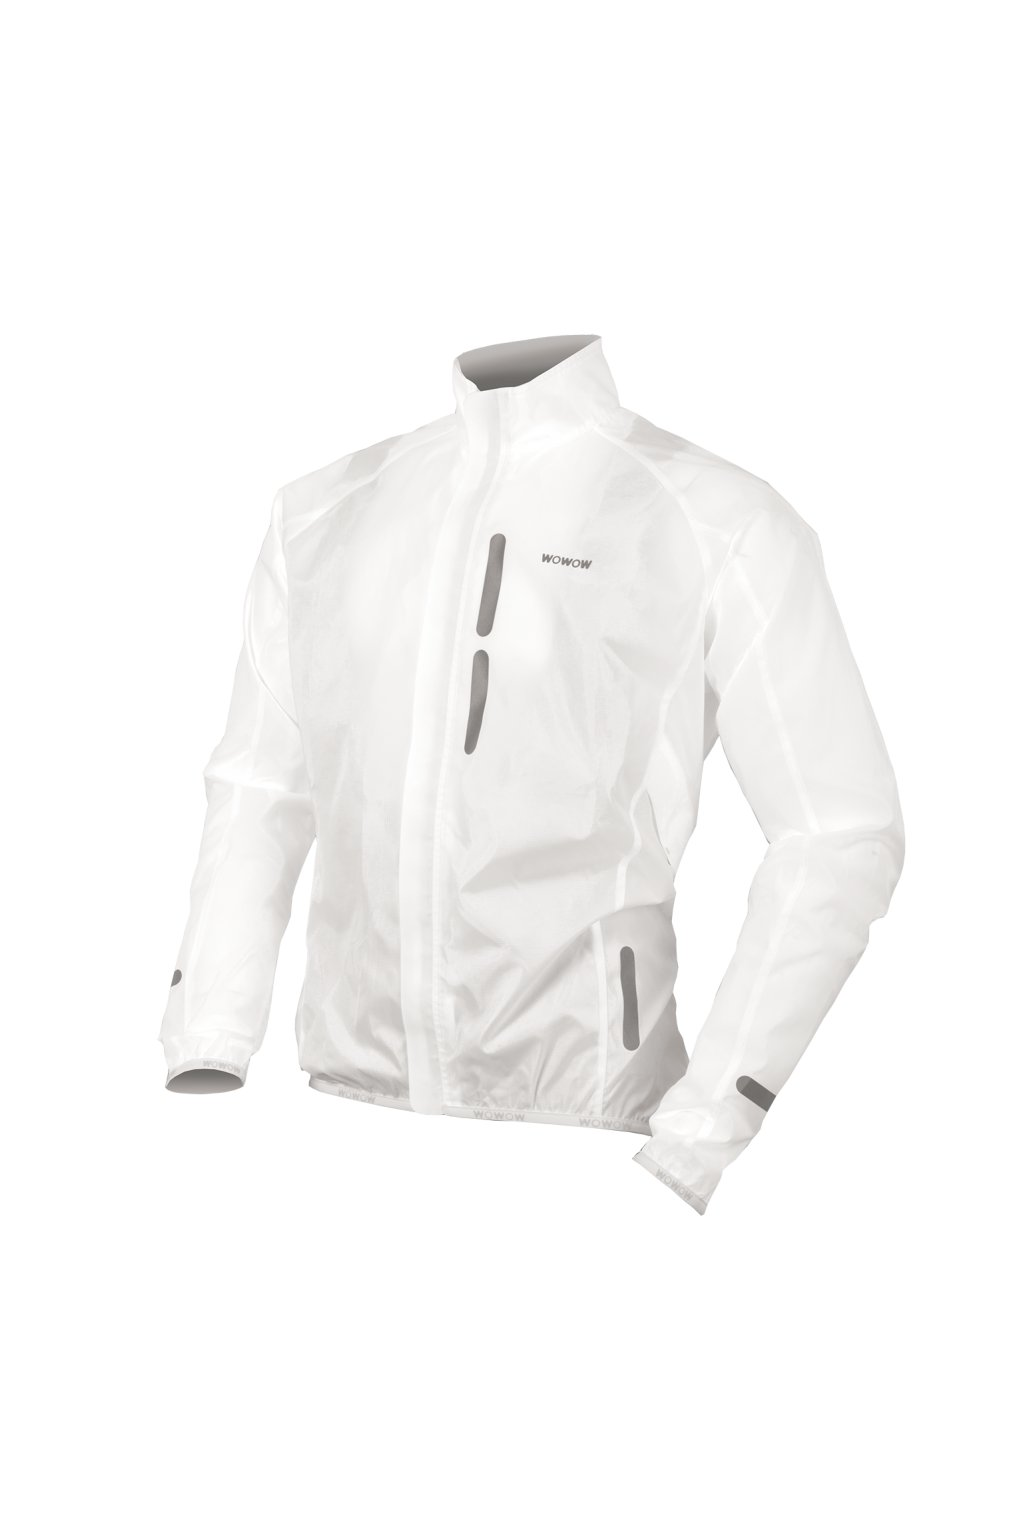 WIND JACKET WHITE FRONT BIG